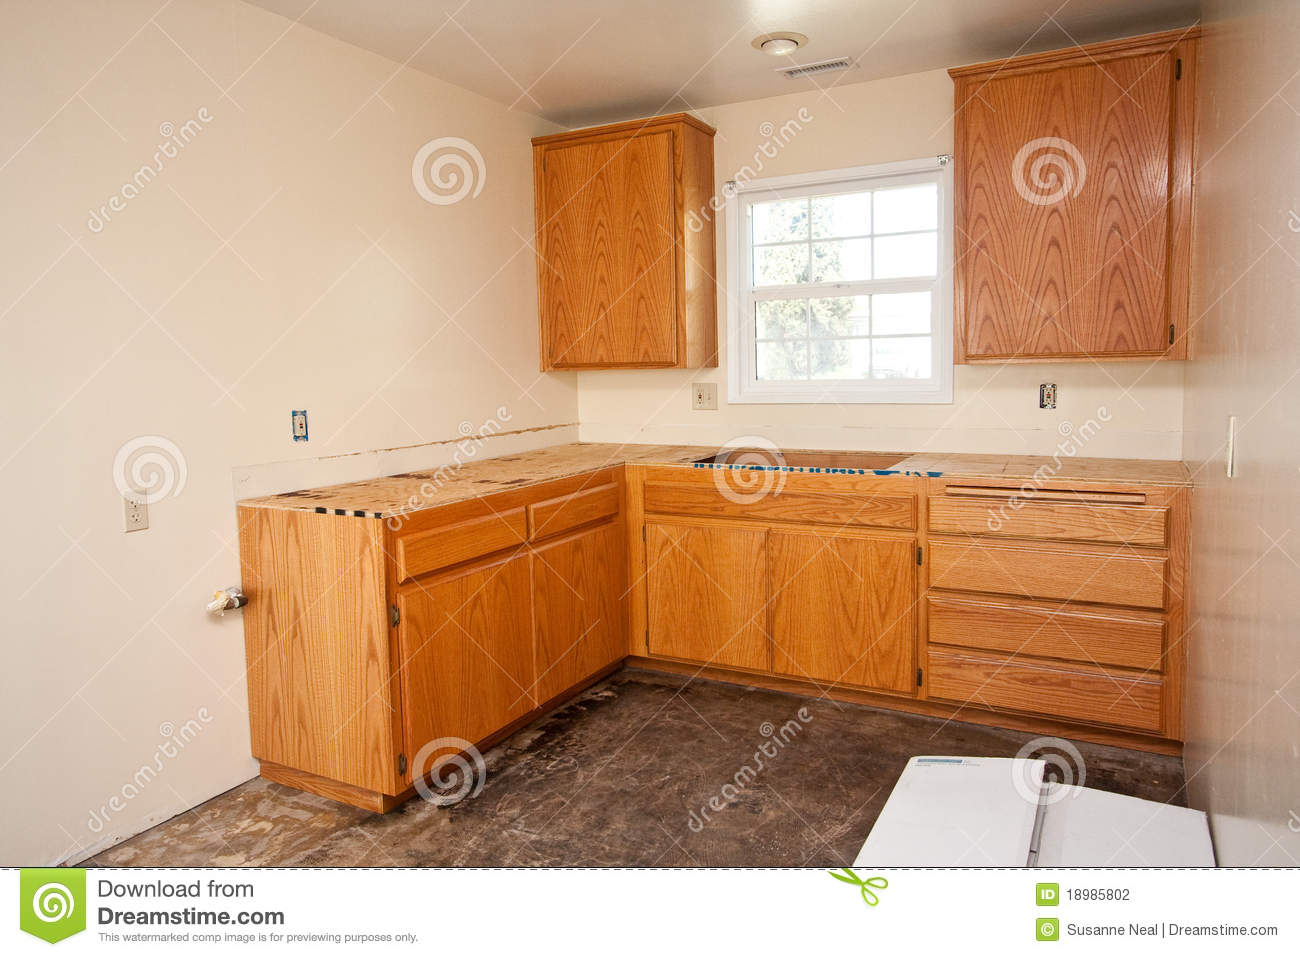 Countertop Kitchen Cabinet : Oak kitchen cabinets without countertop. Kitchen is being remodeled ...